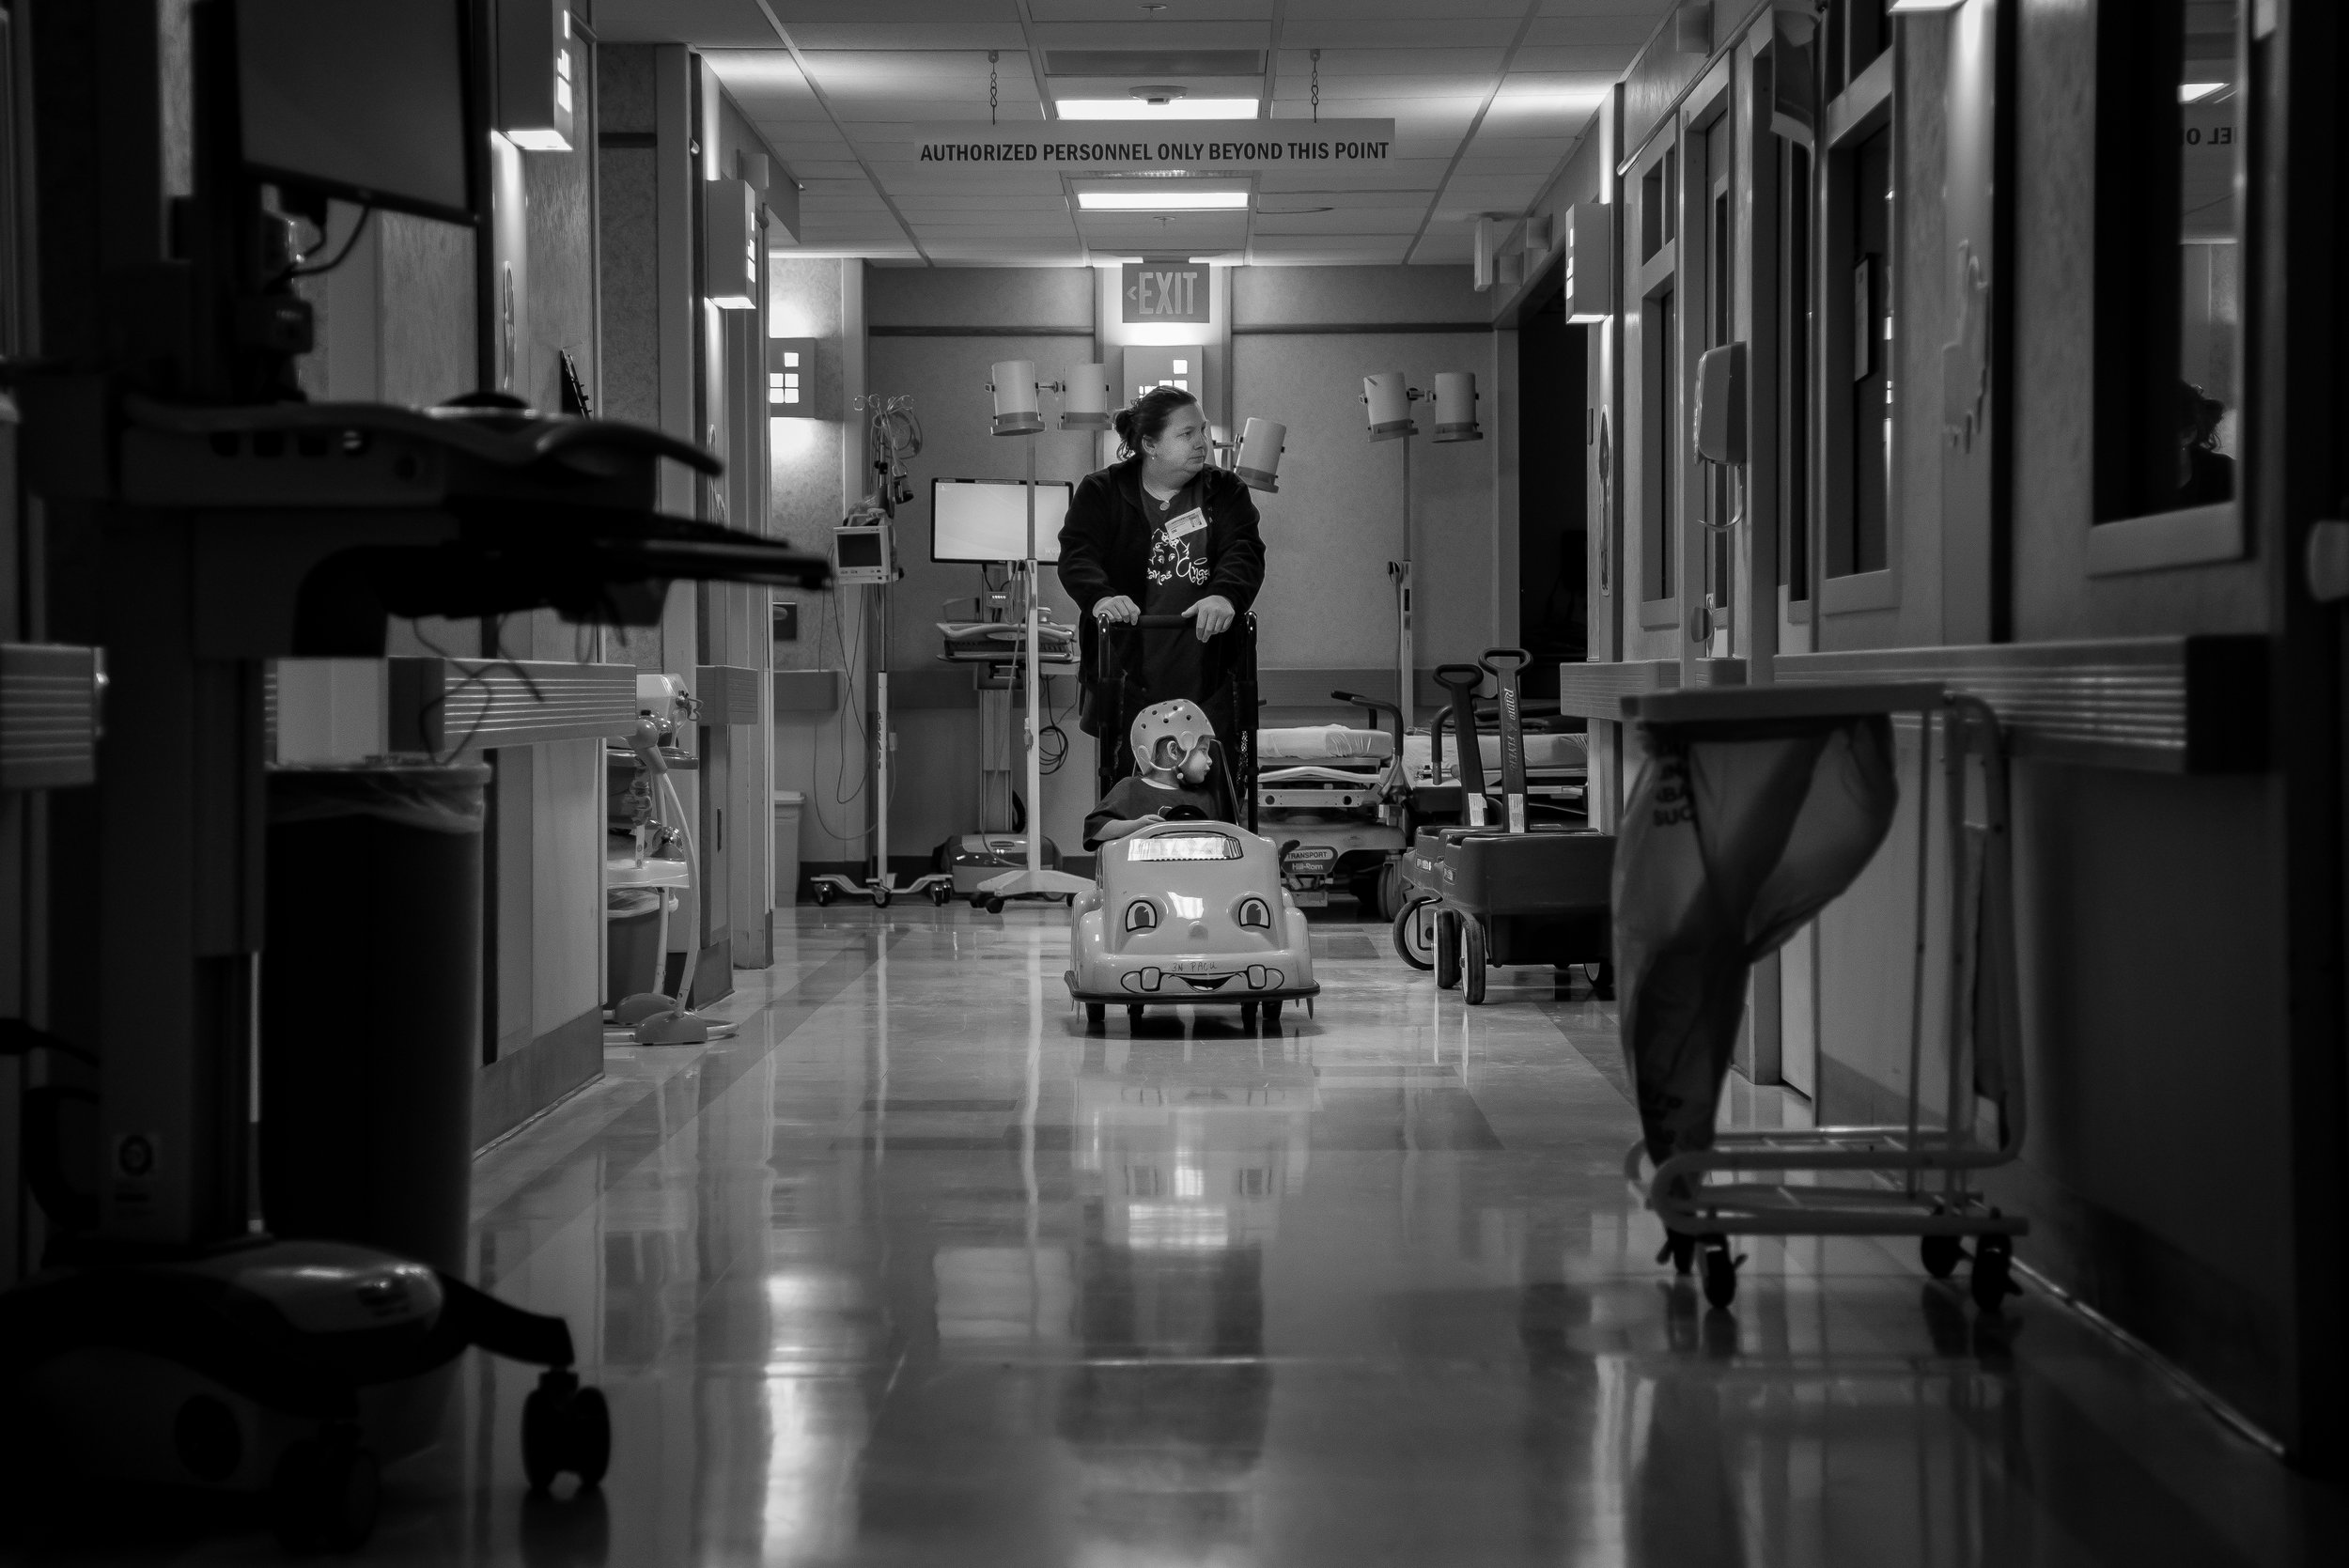 """en pushes Arianna down an empty hallway while waiting for her doctor to arrive. """"A lot of people say, 'how do you do it?'"""" said Jennifer. """"I have no choice. To me, it's my daughter. I want what's best for her."""""""